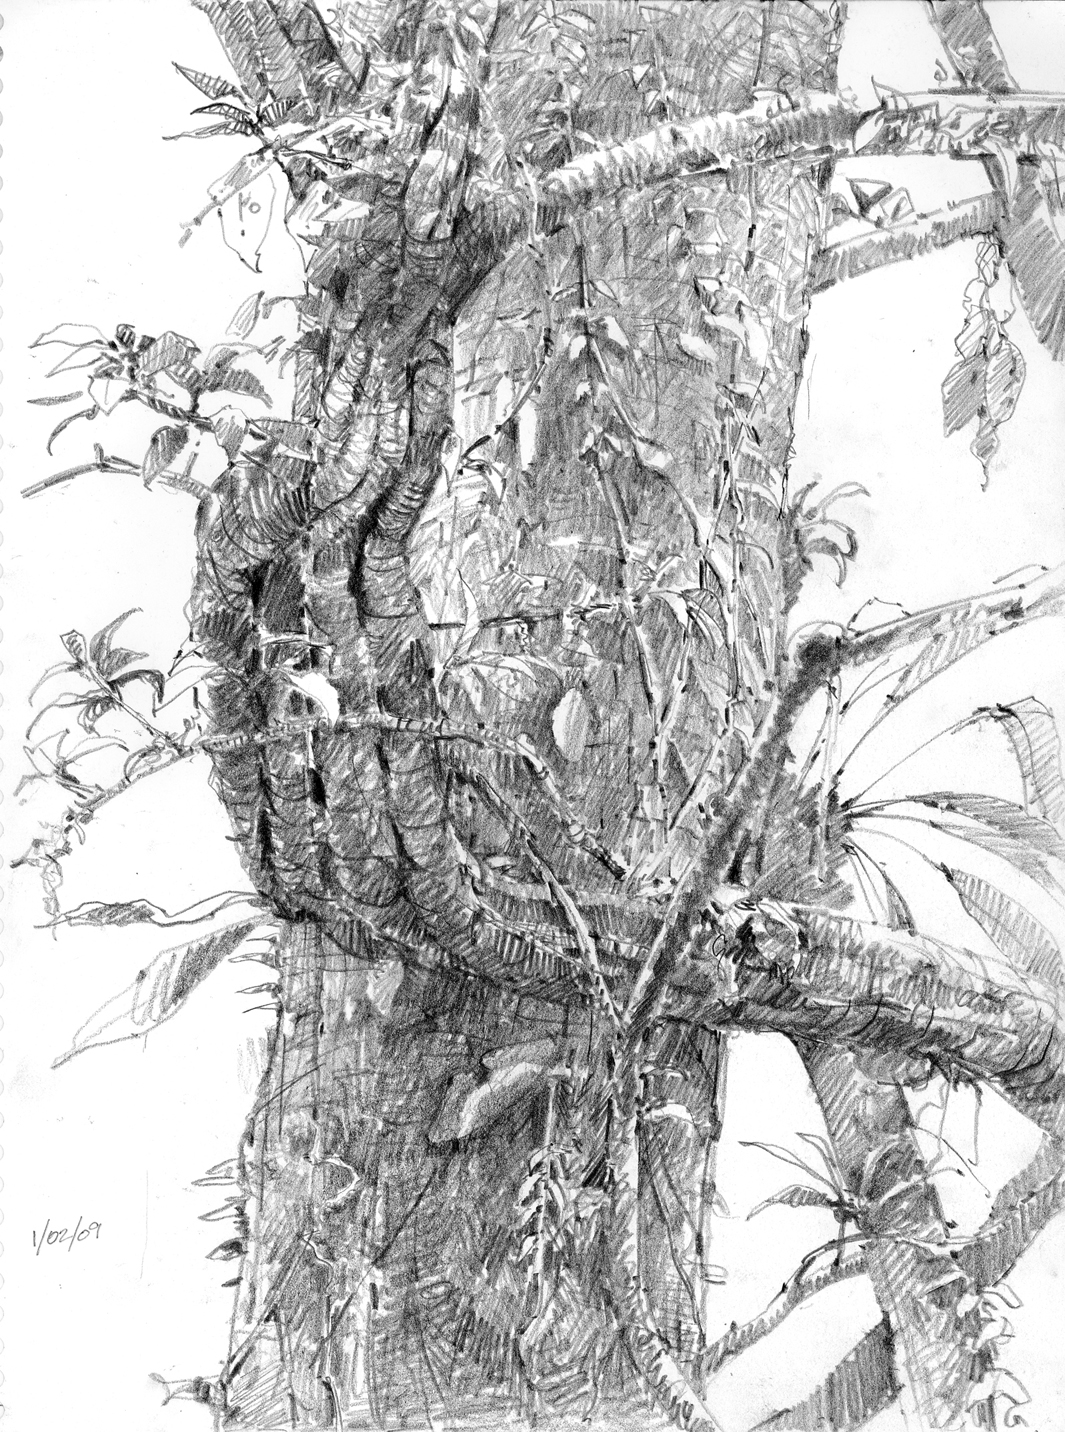 Drawn rainforest pen and ink Drawings of life some –